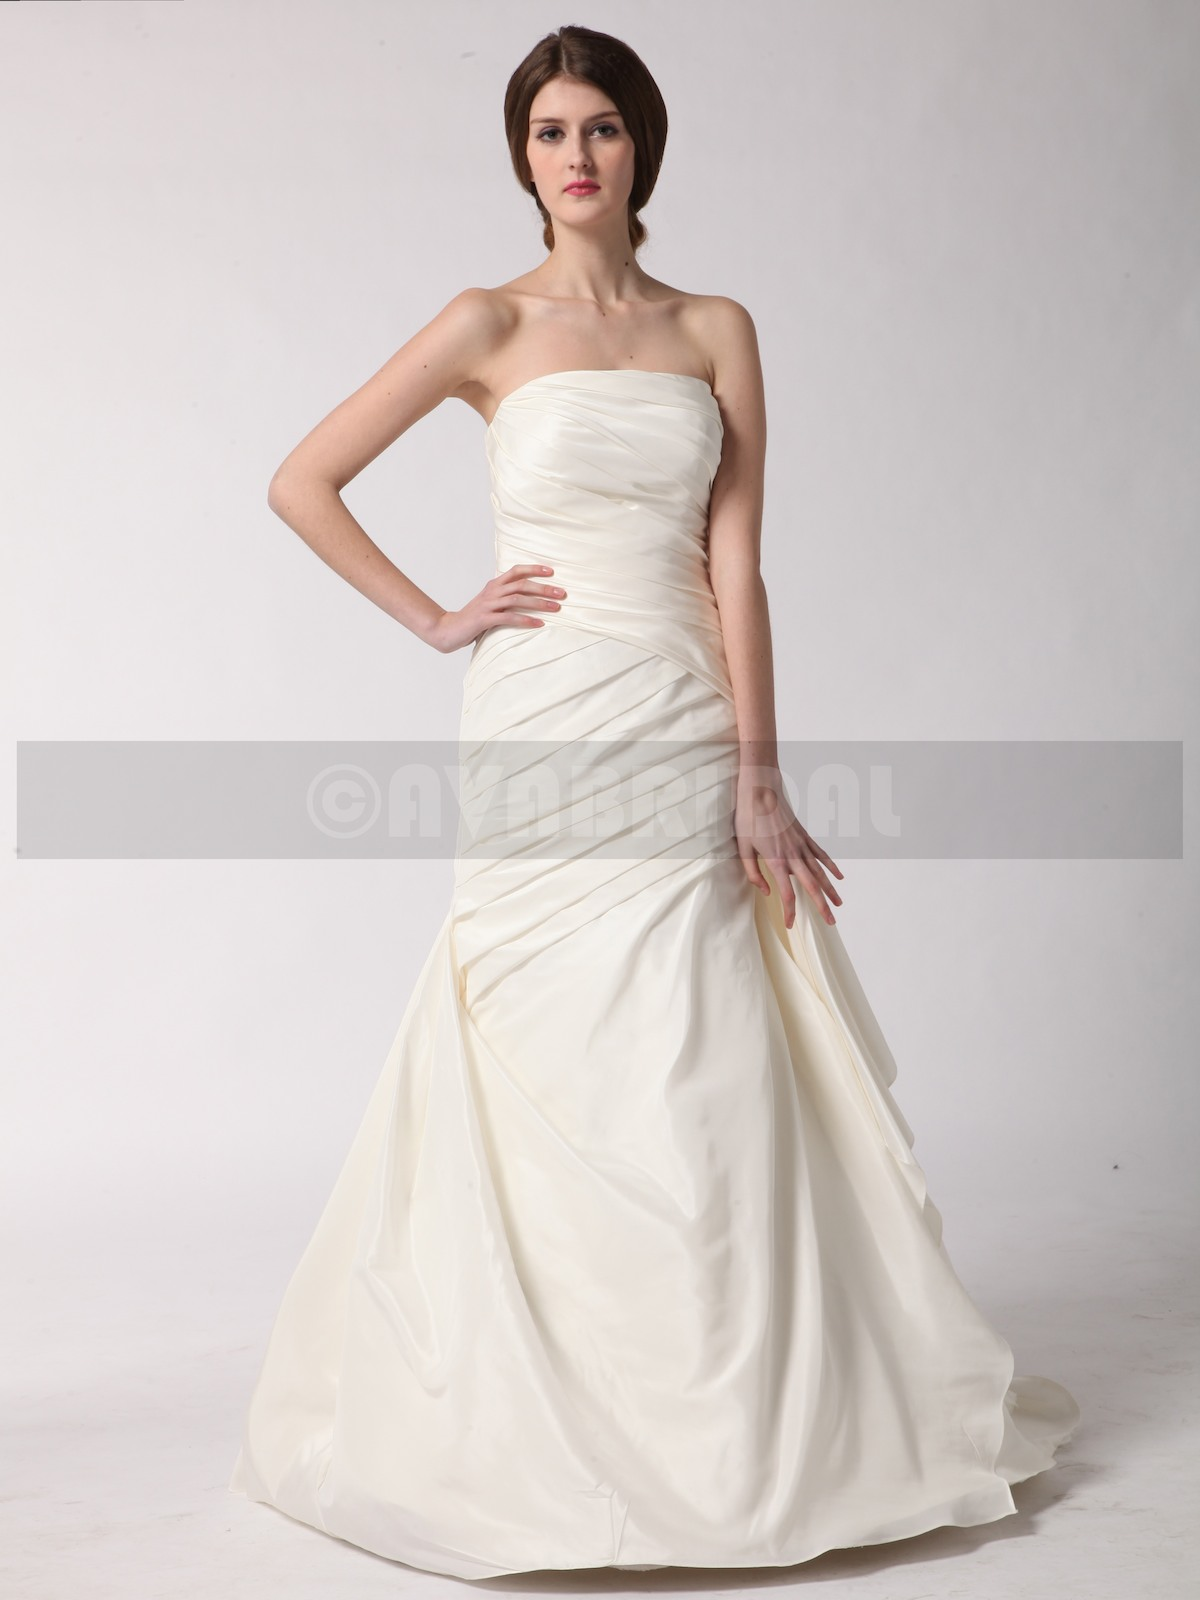 Simple Wedding Dress - Queenie - Front